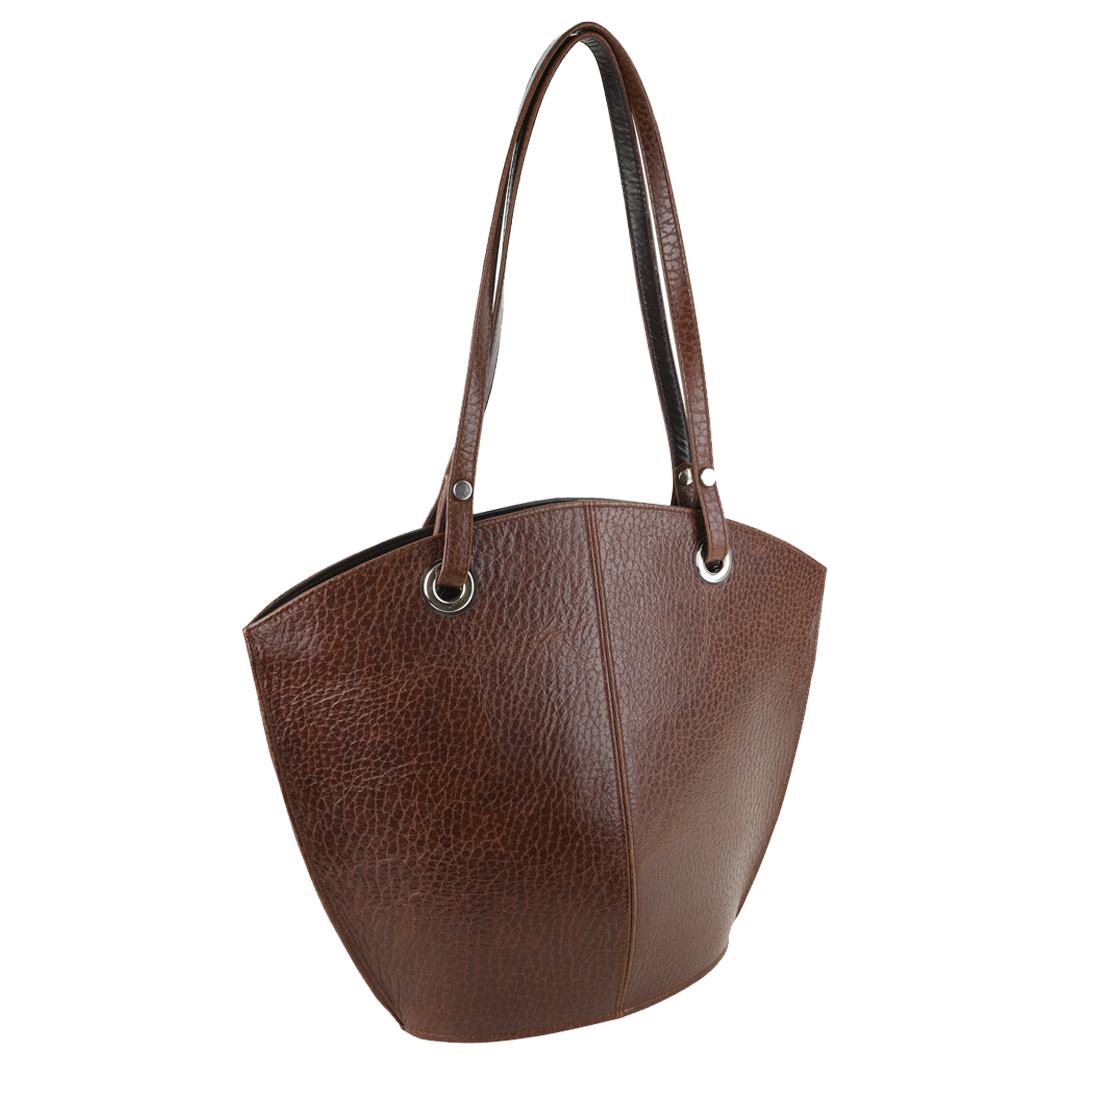 Audrey Dark Brown Leather Tote Bag